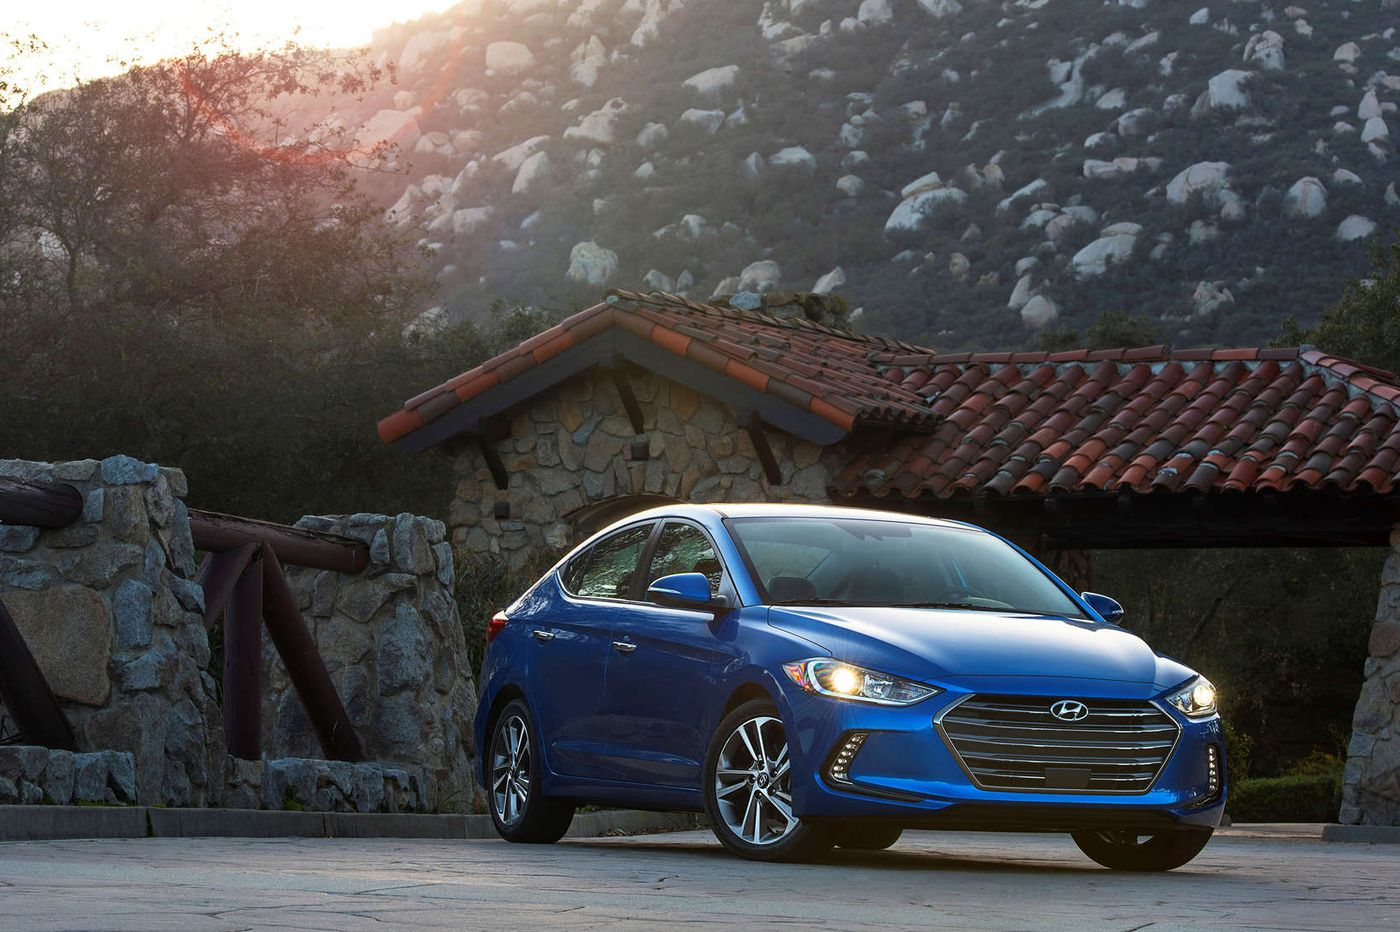 Elantra: strong contender in the compact segment